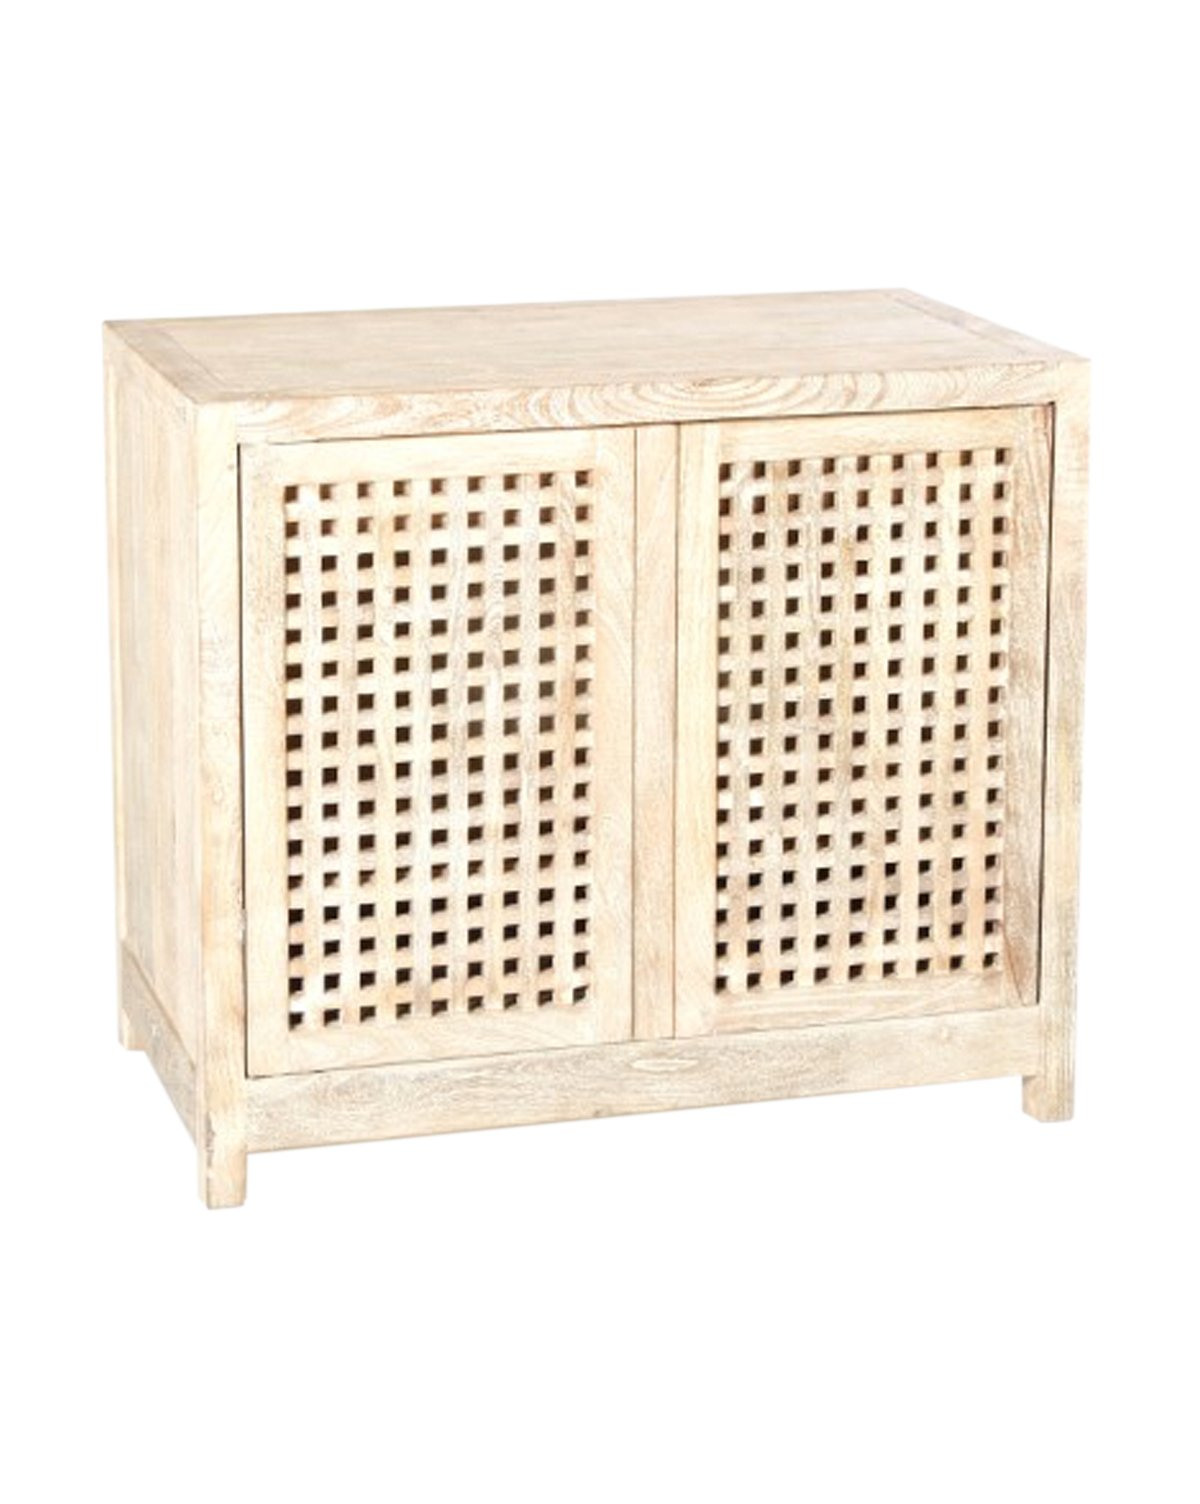 Cody_Lattice_Nightstand_1_copy.jpg